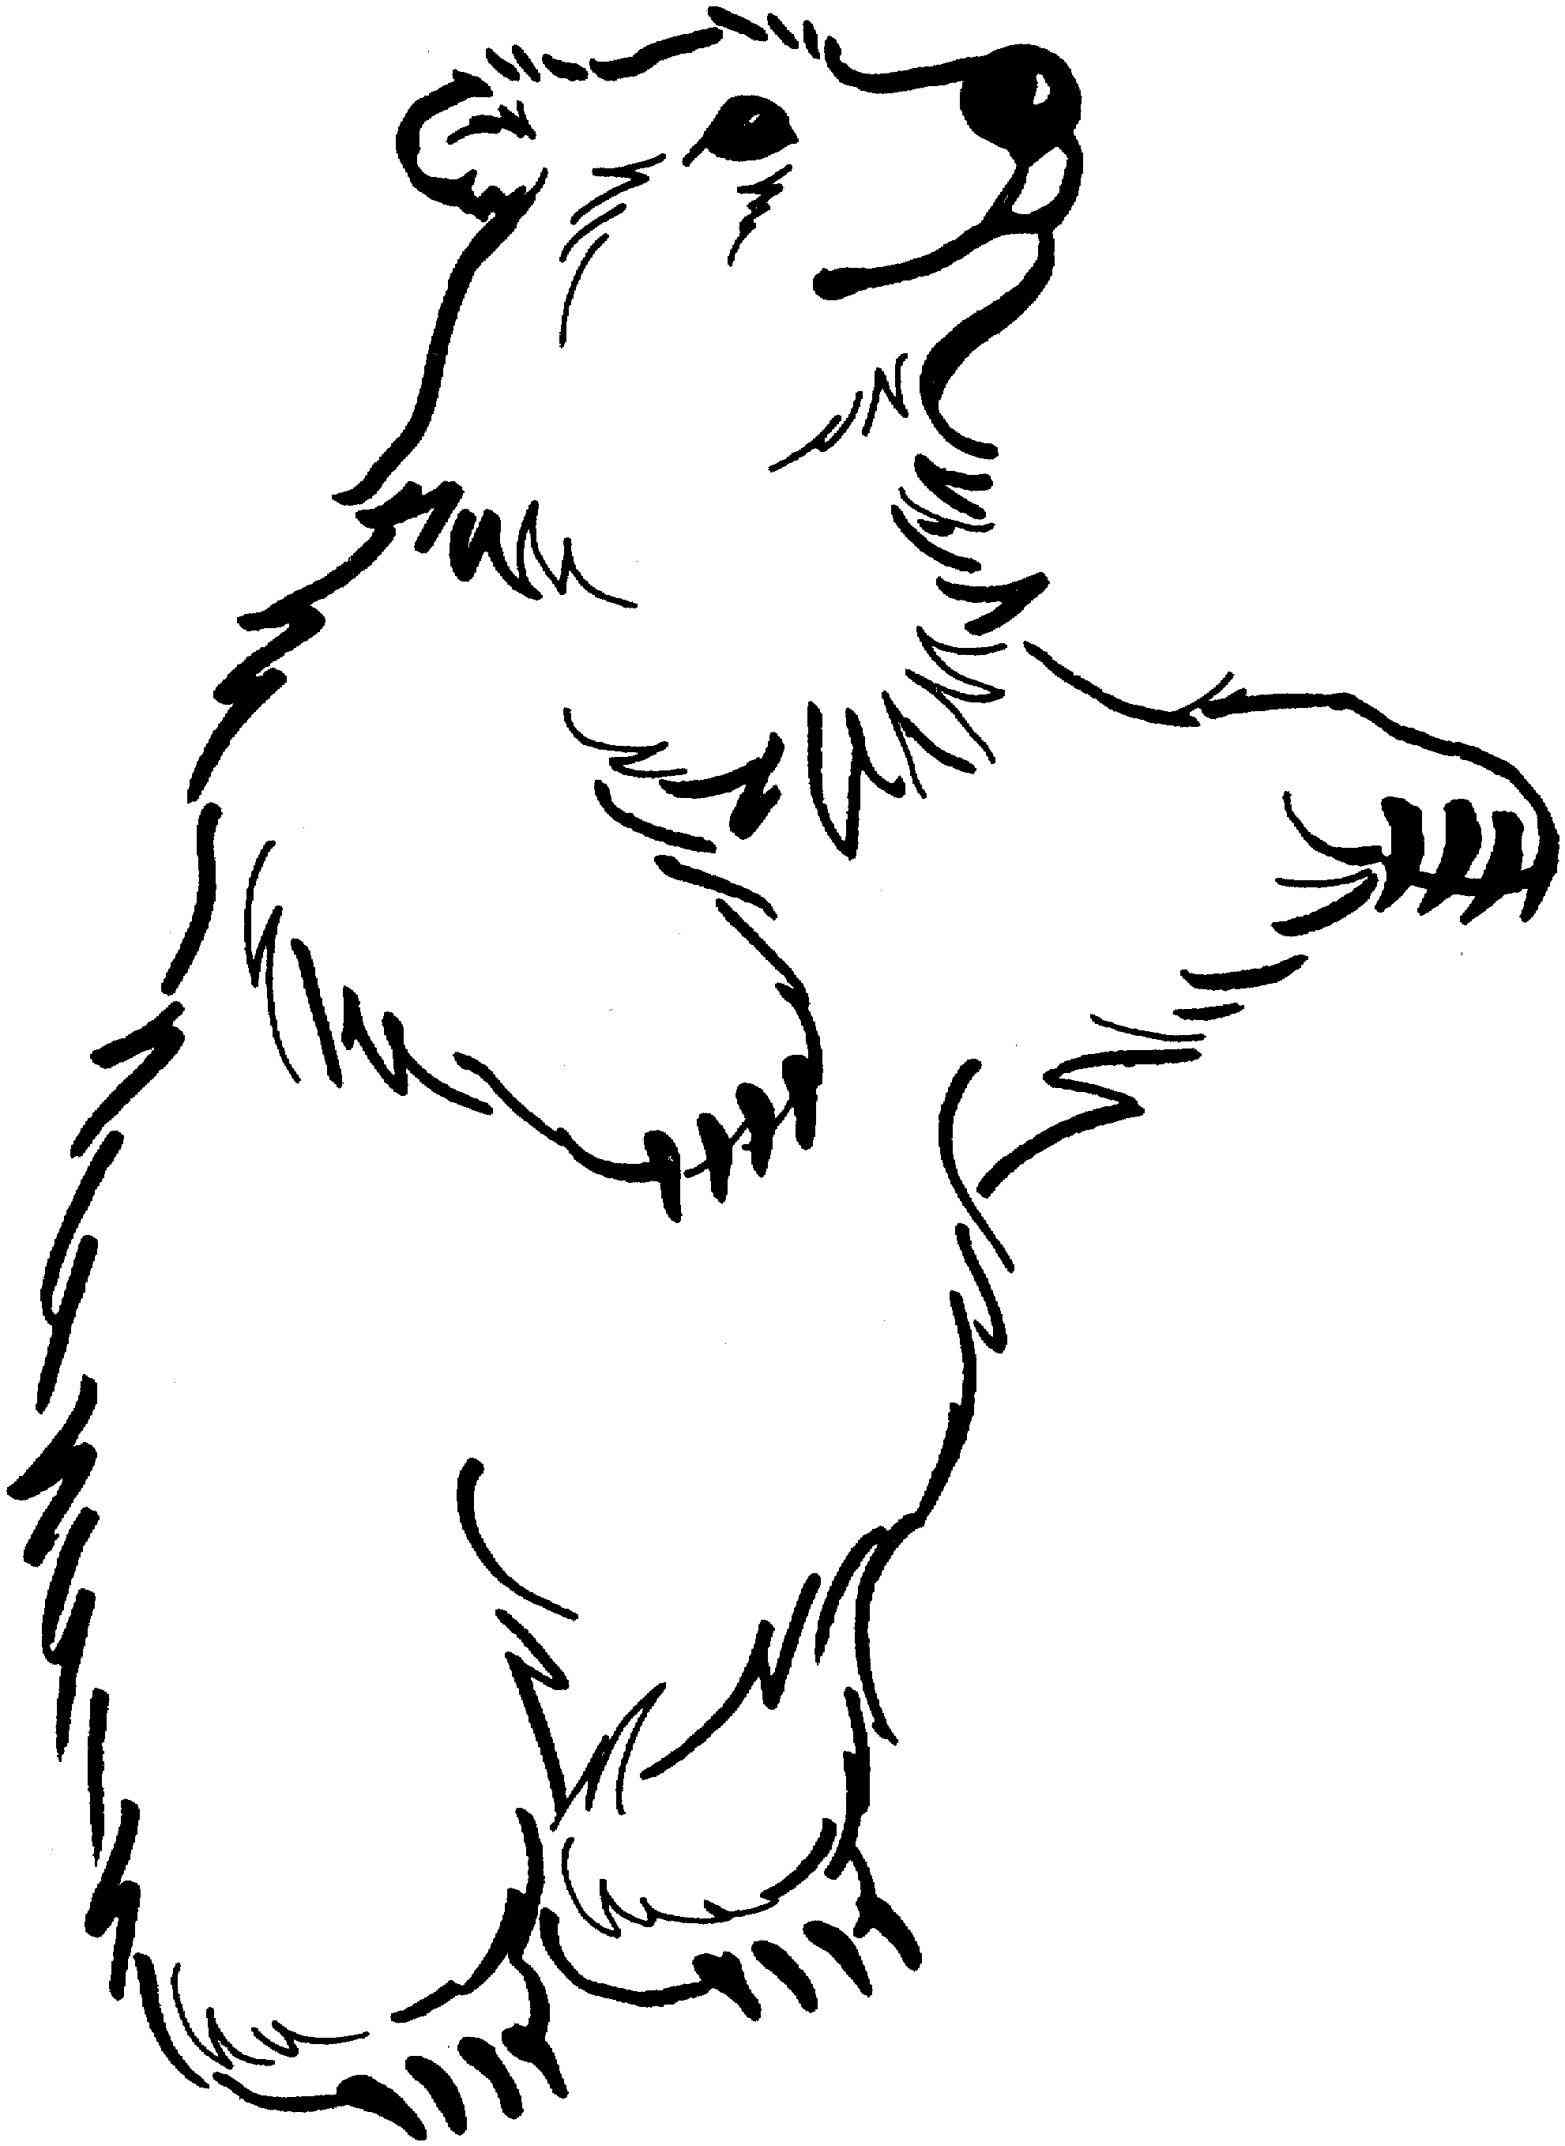 Awesome clipart gallery digital. Bear clip art black and white library